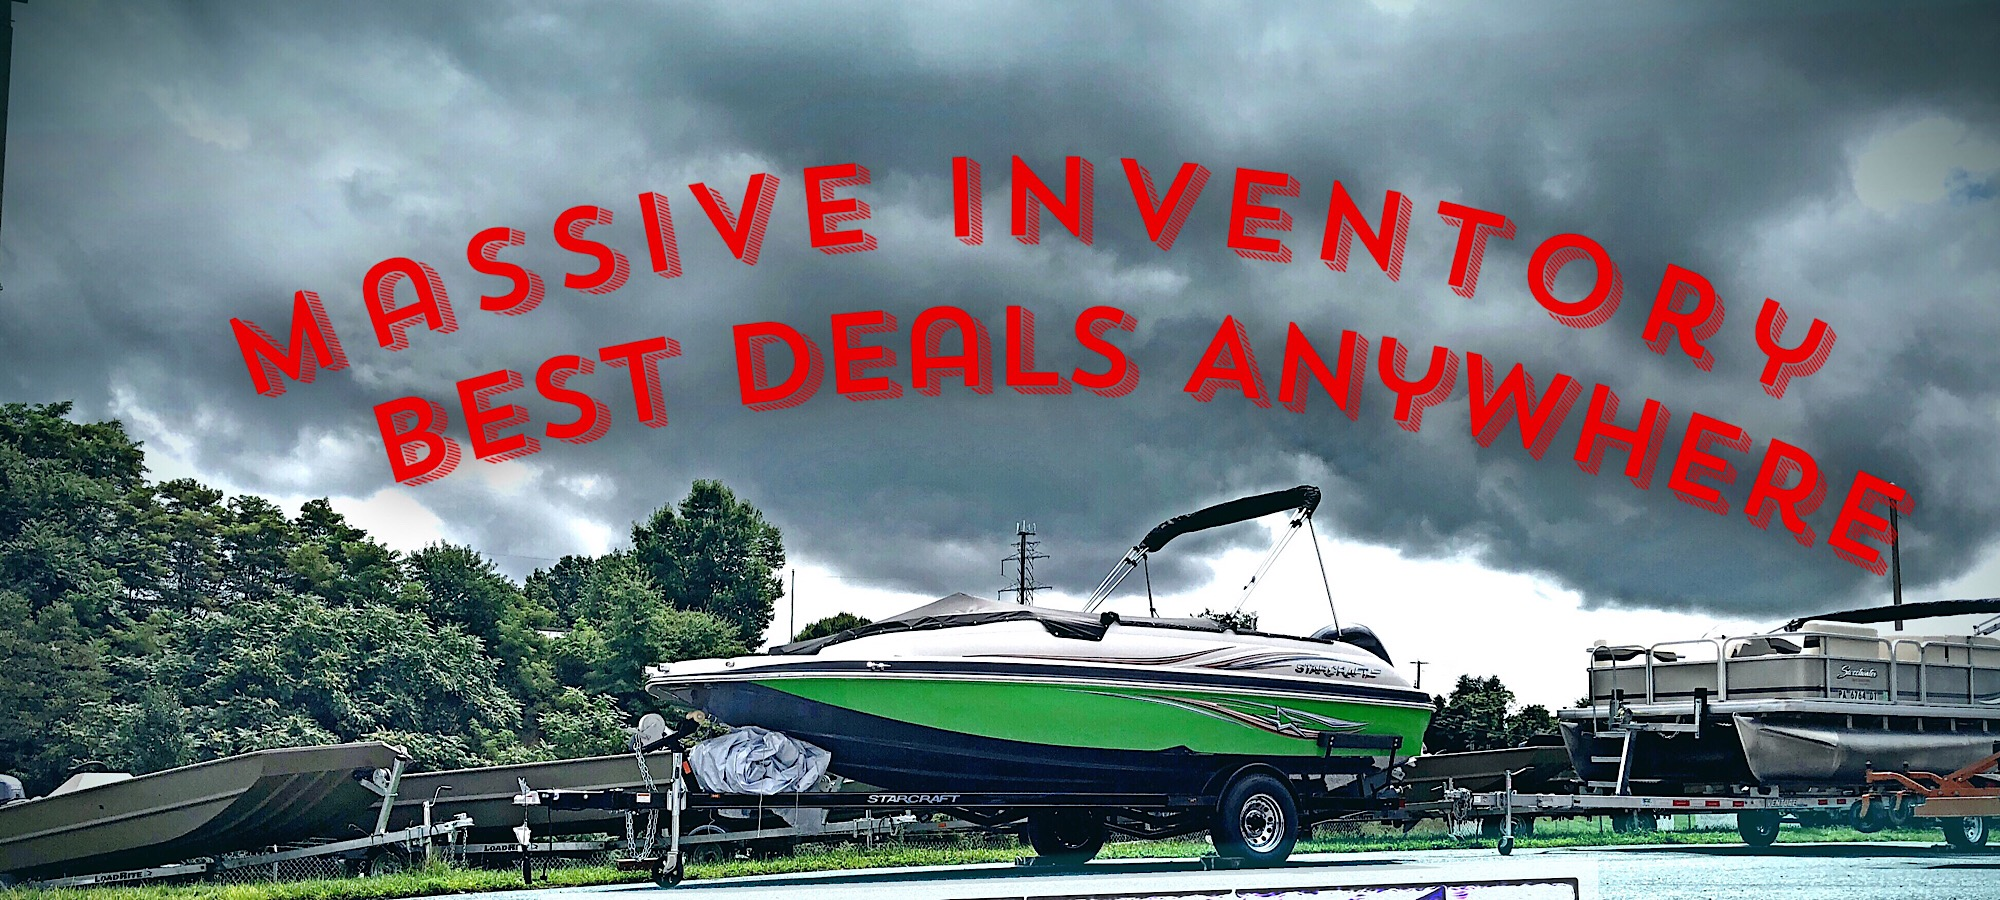 New And Used Boat Packages Sale Priced Now Massive Boat